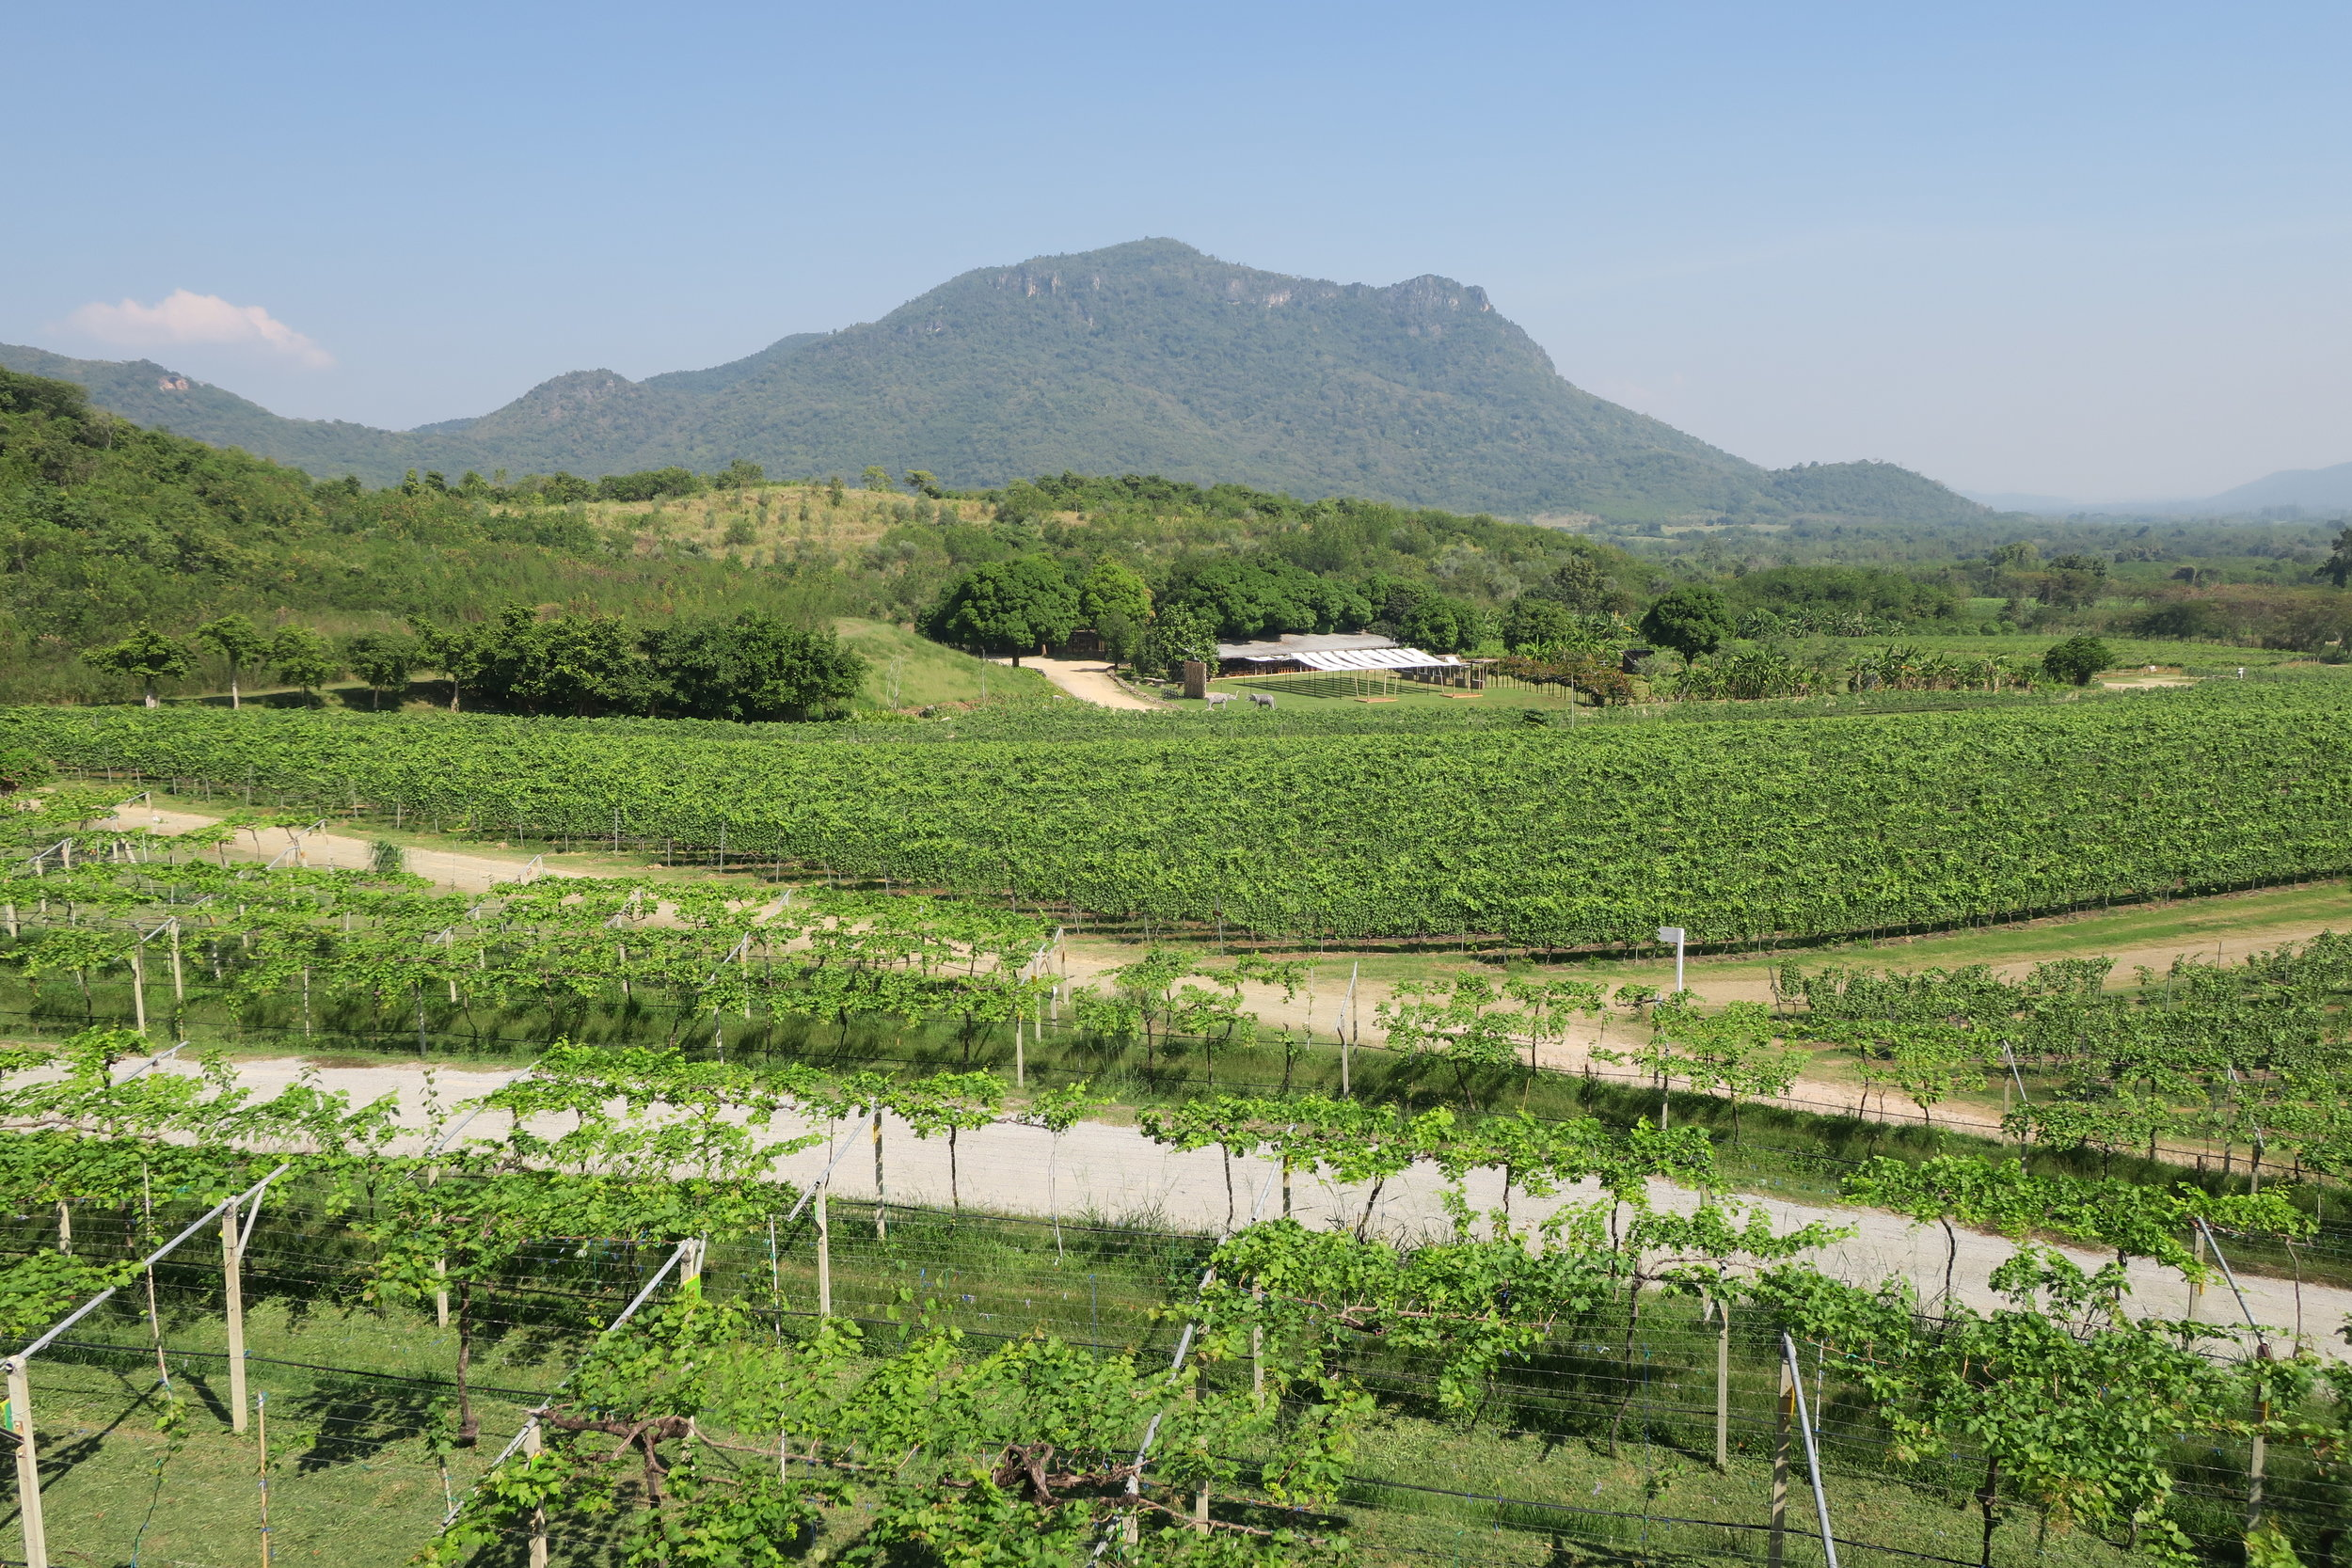 Hua Hin Hills at the backdrop of Monsoon Valley vineyards (Image: Sumita Sarma)